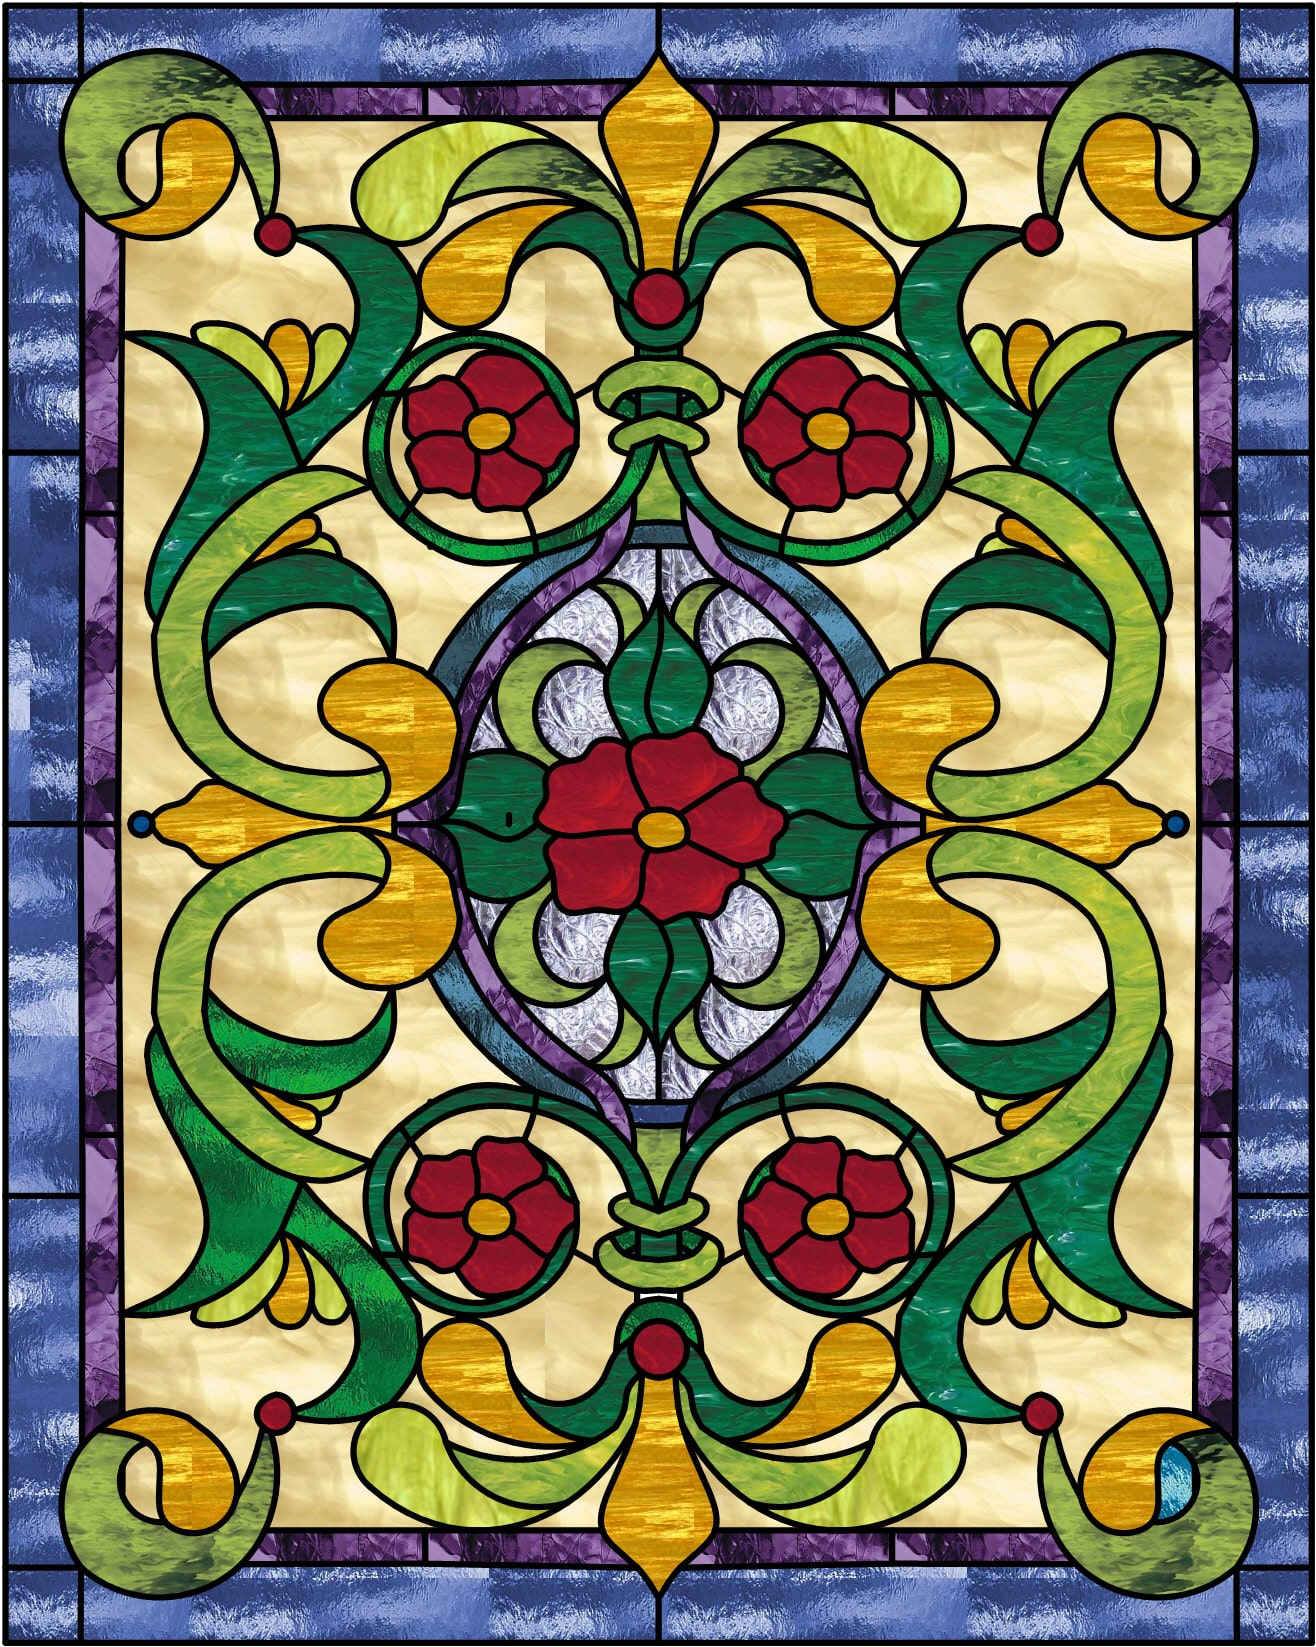 Victorian rose pedals stained glass window panel - Stained glass window designs ...